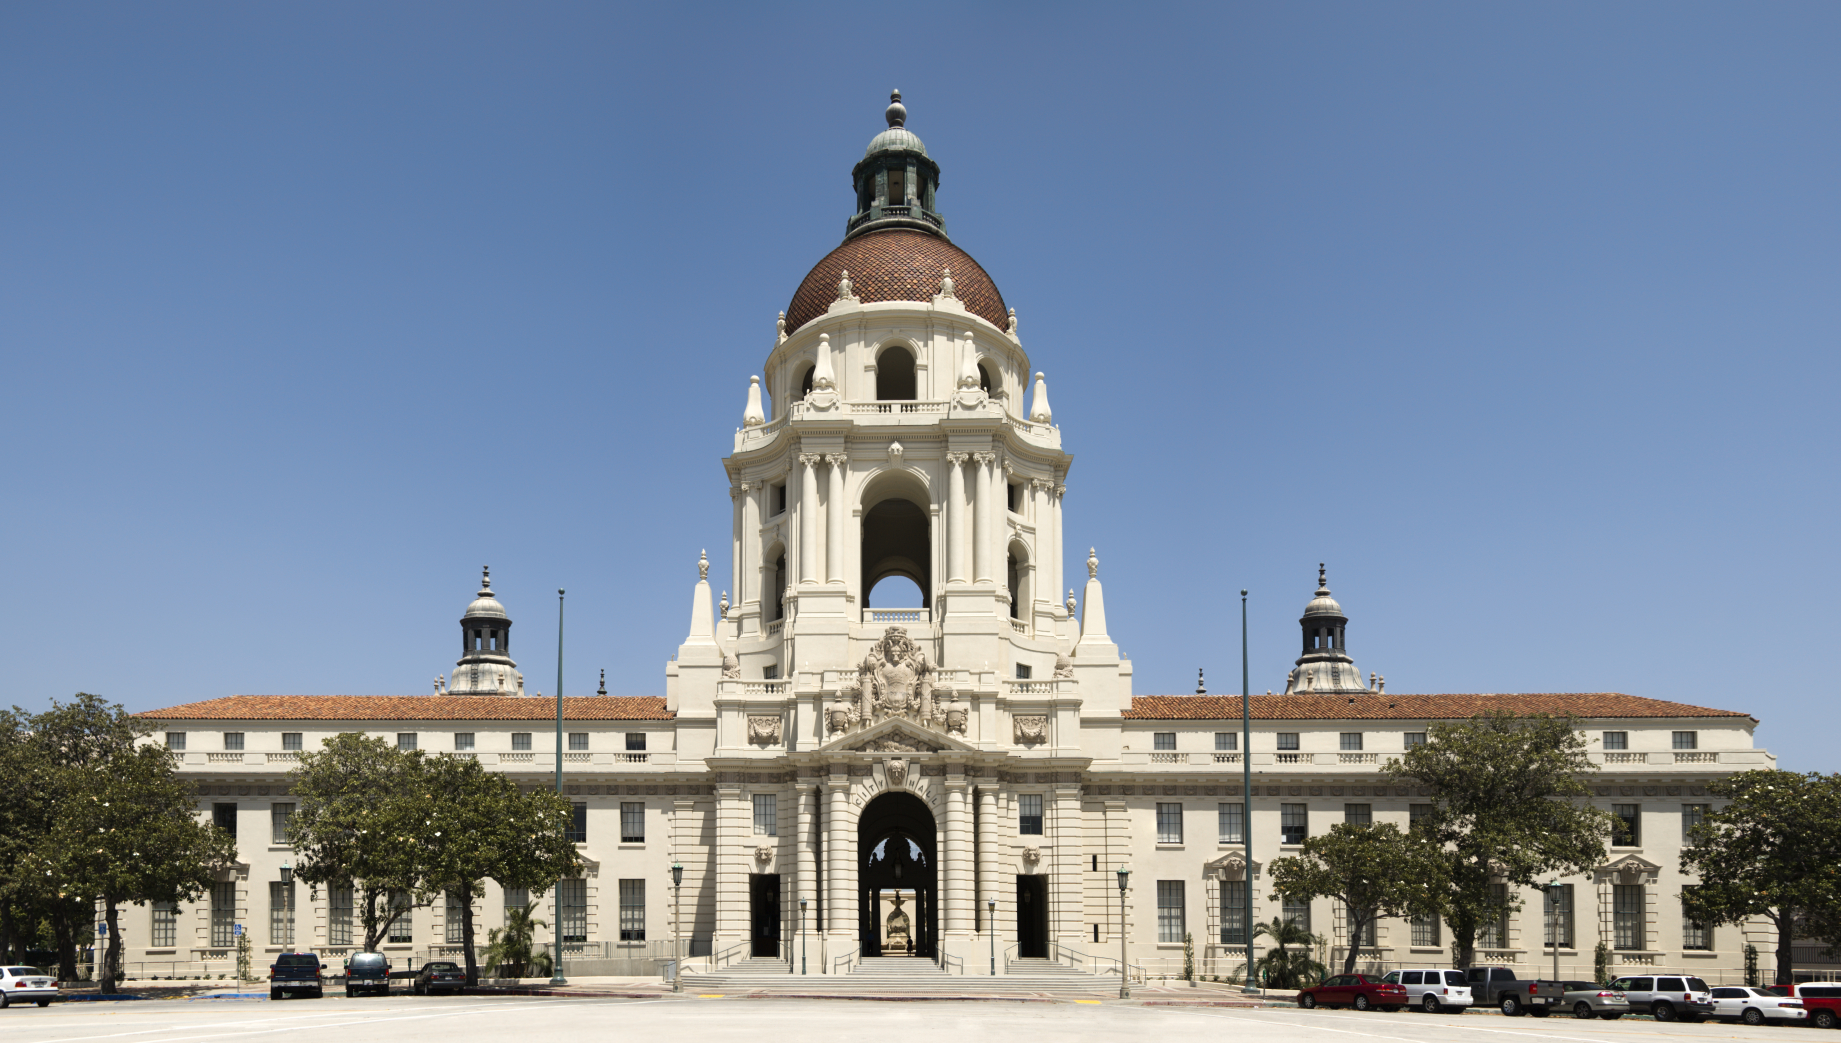 Pasadena_City_Hall_iStock_000003666405_Medium.jpg